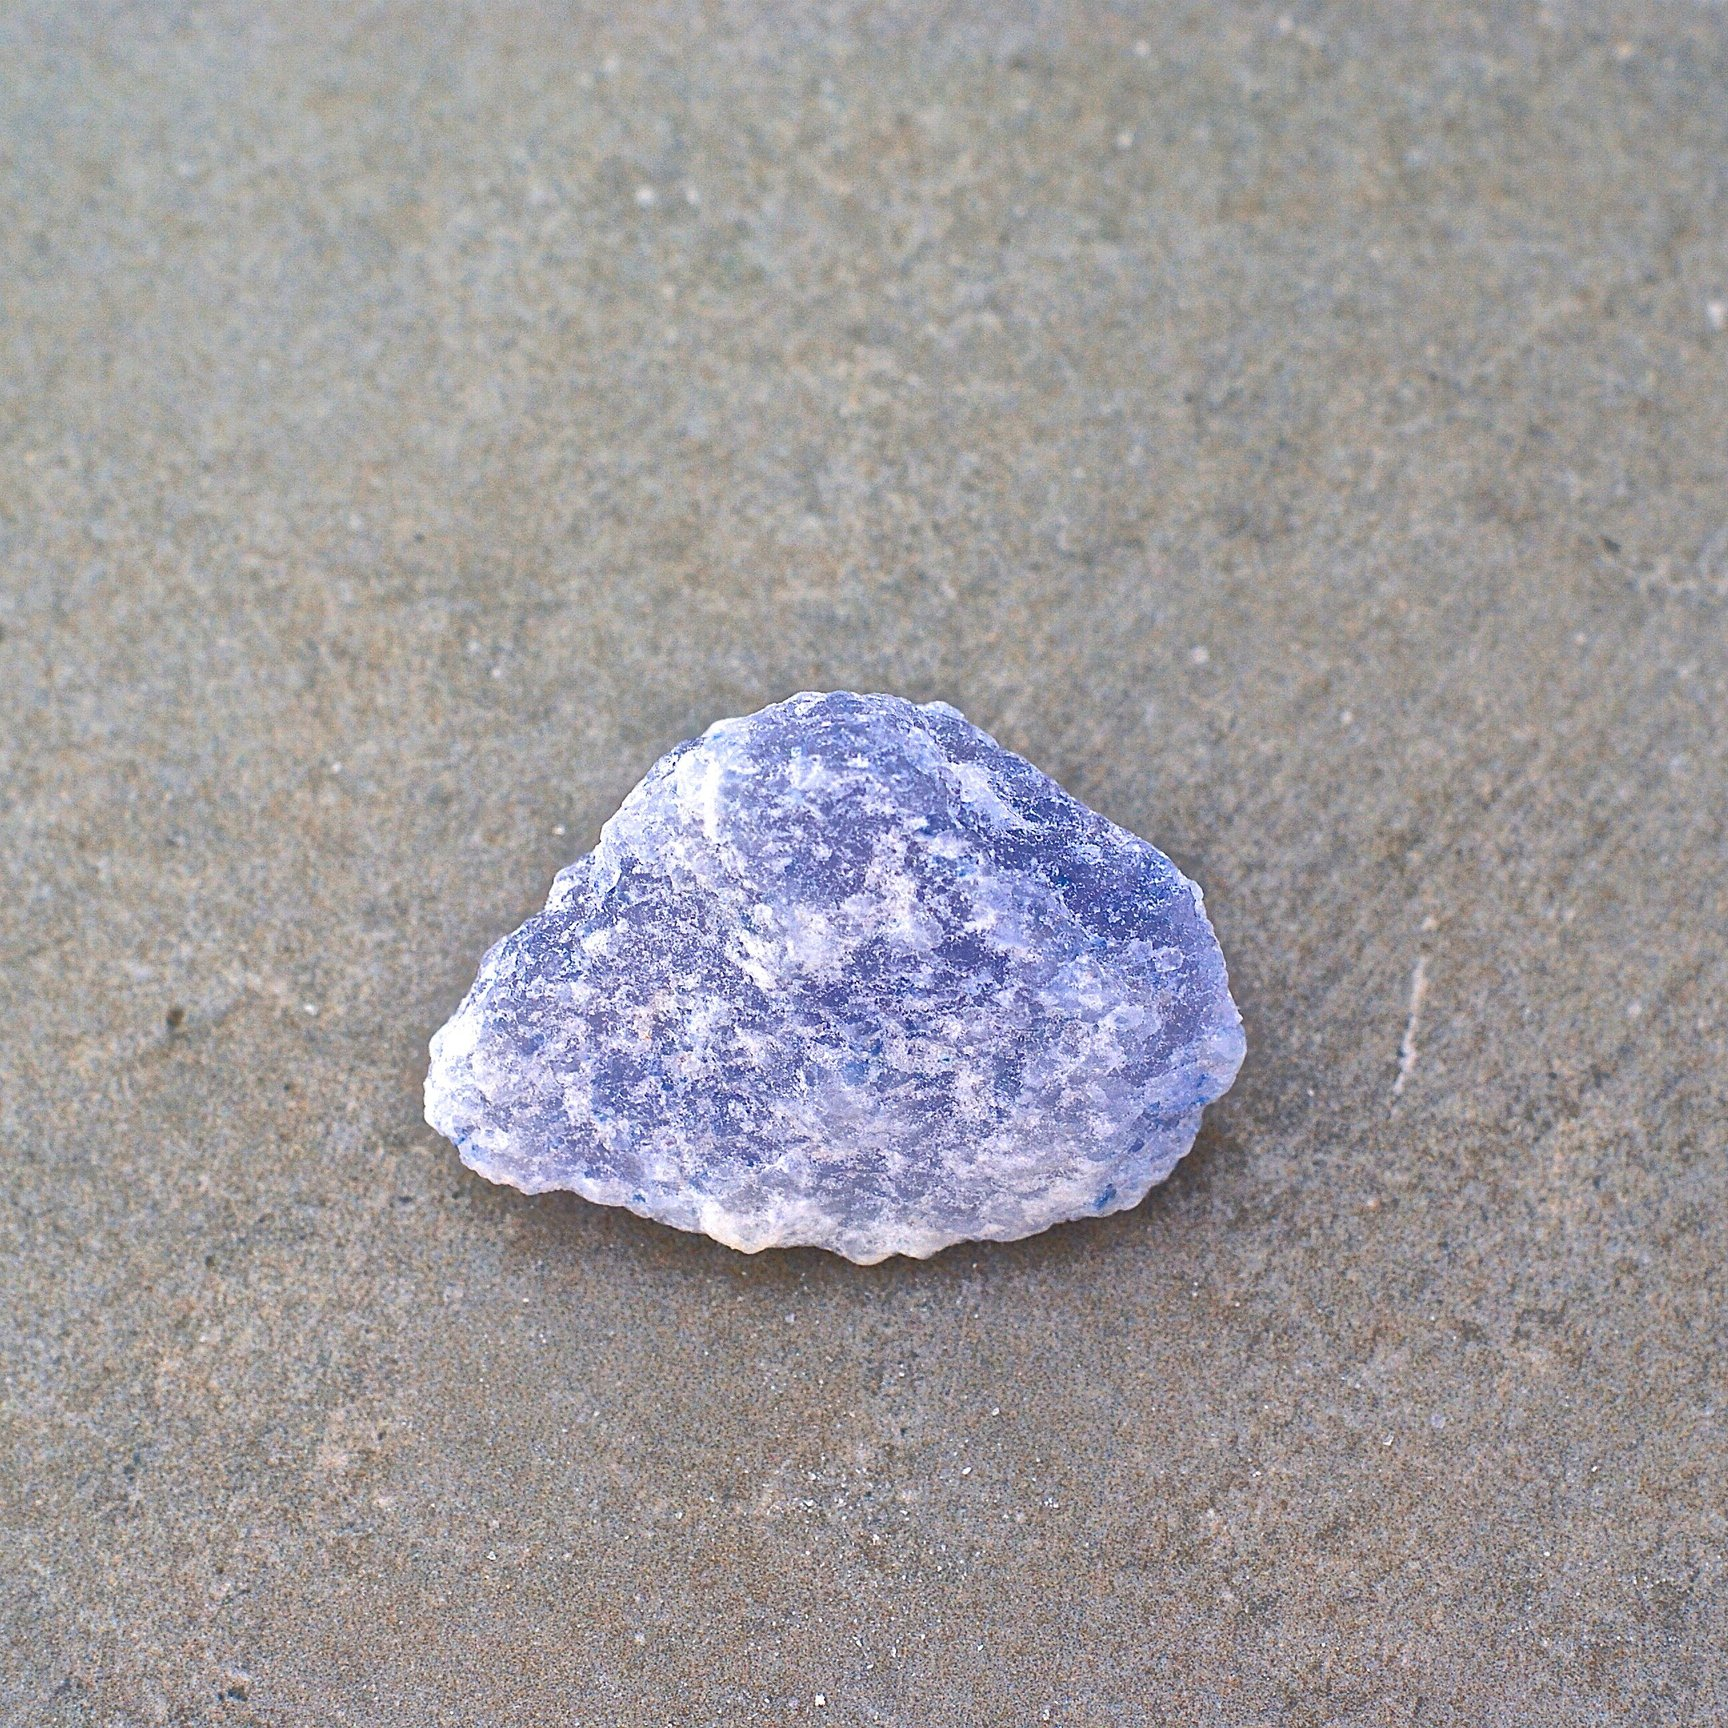 010 BLUE - PERSIAN BLUE SALT ROCKS